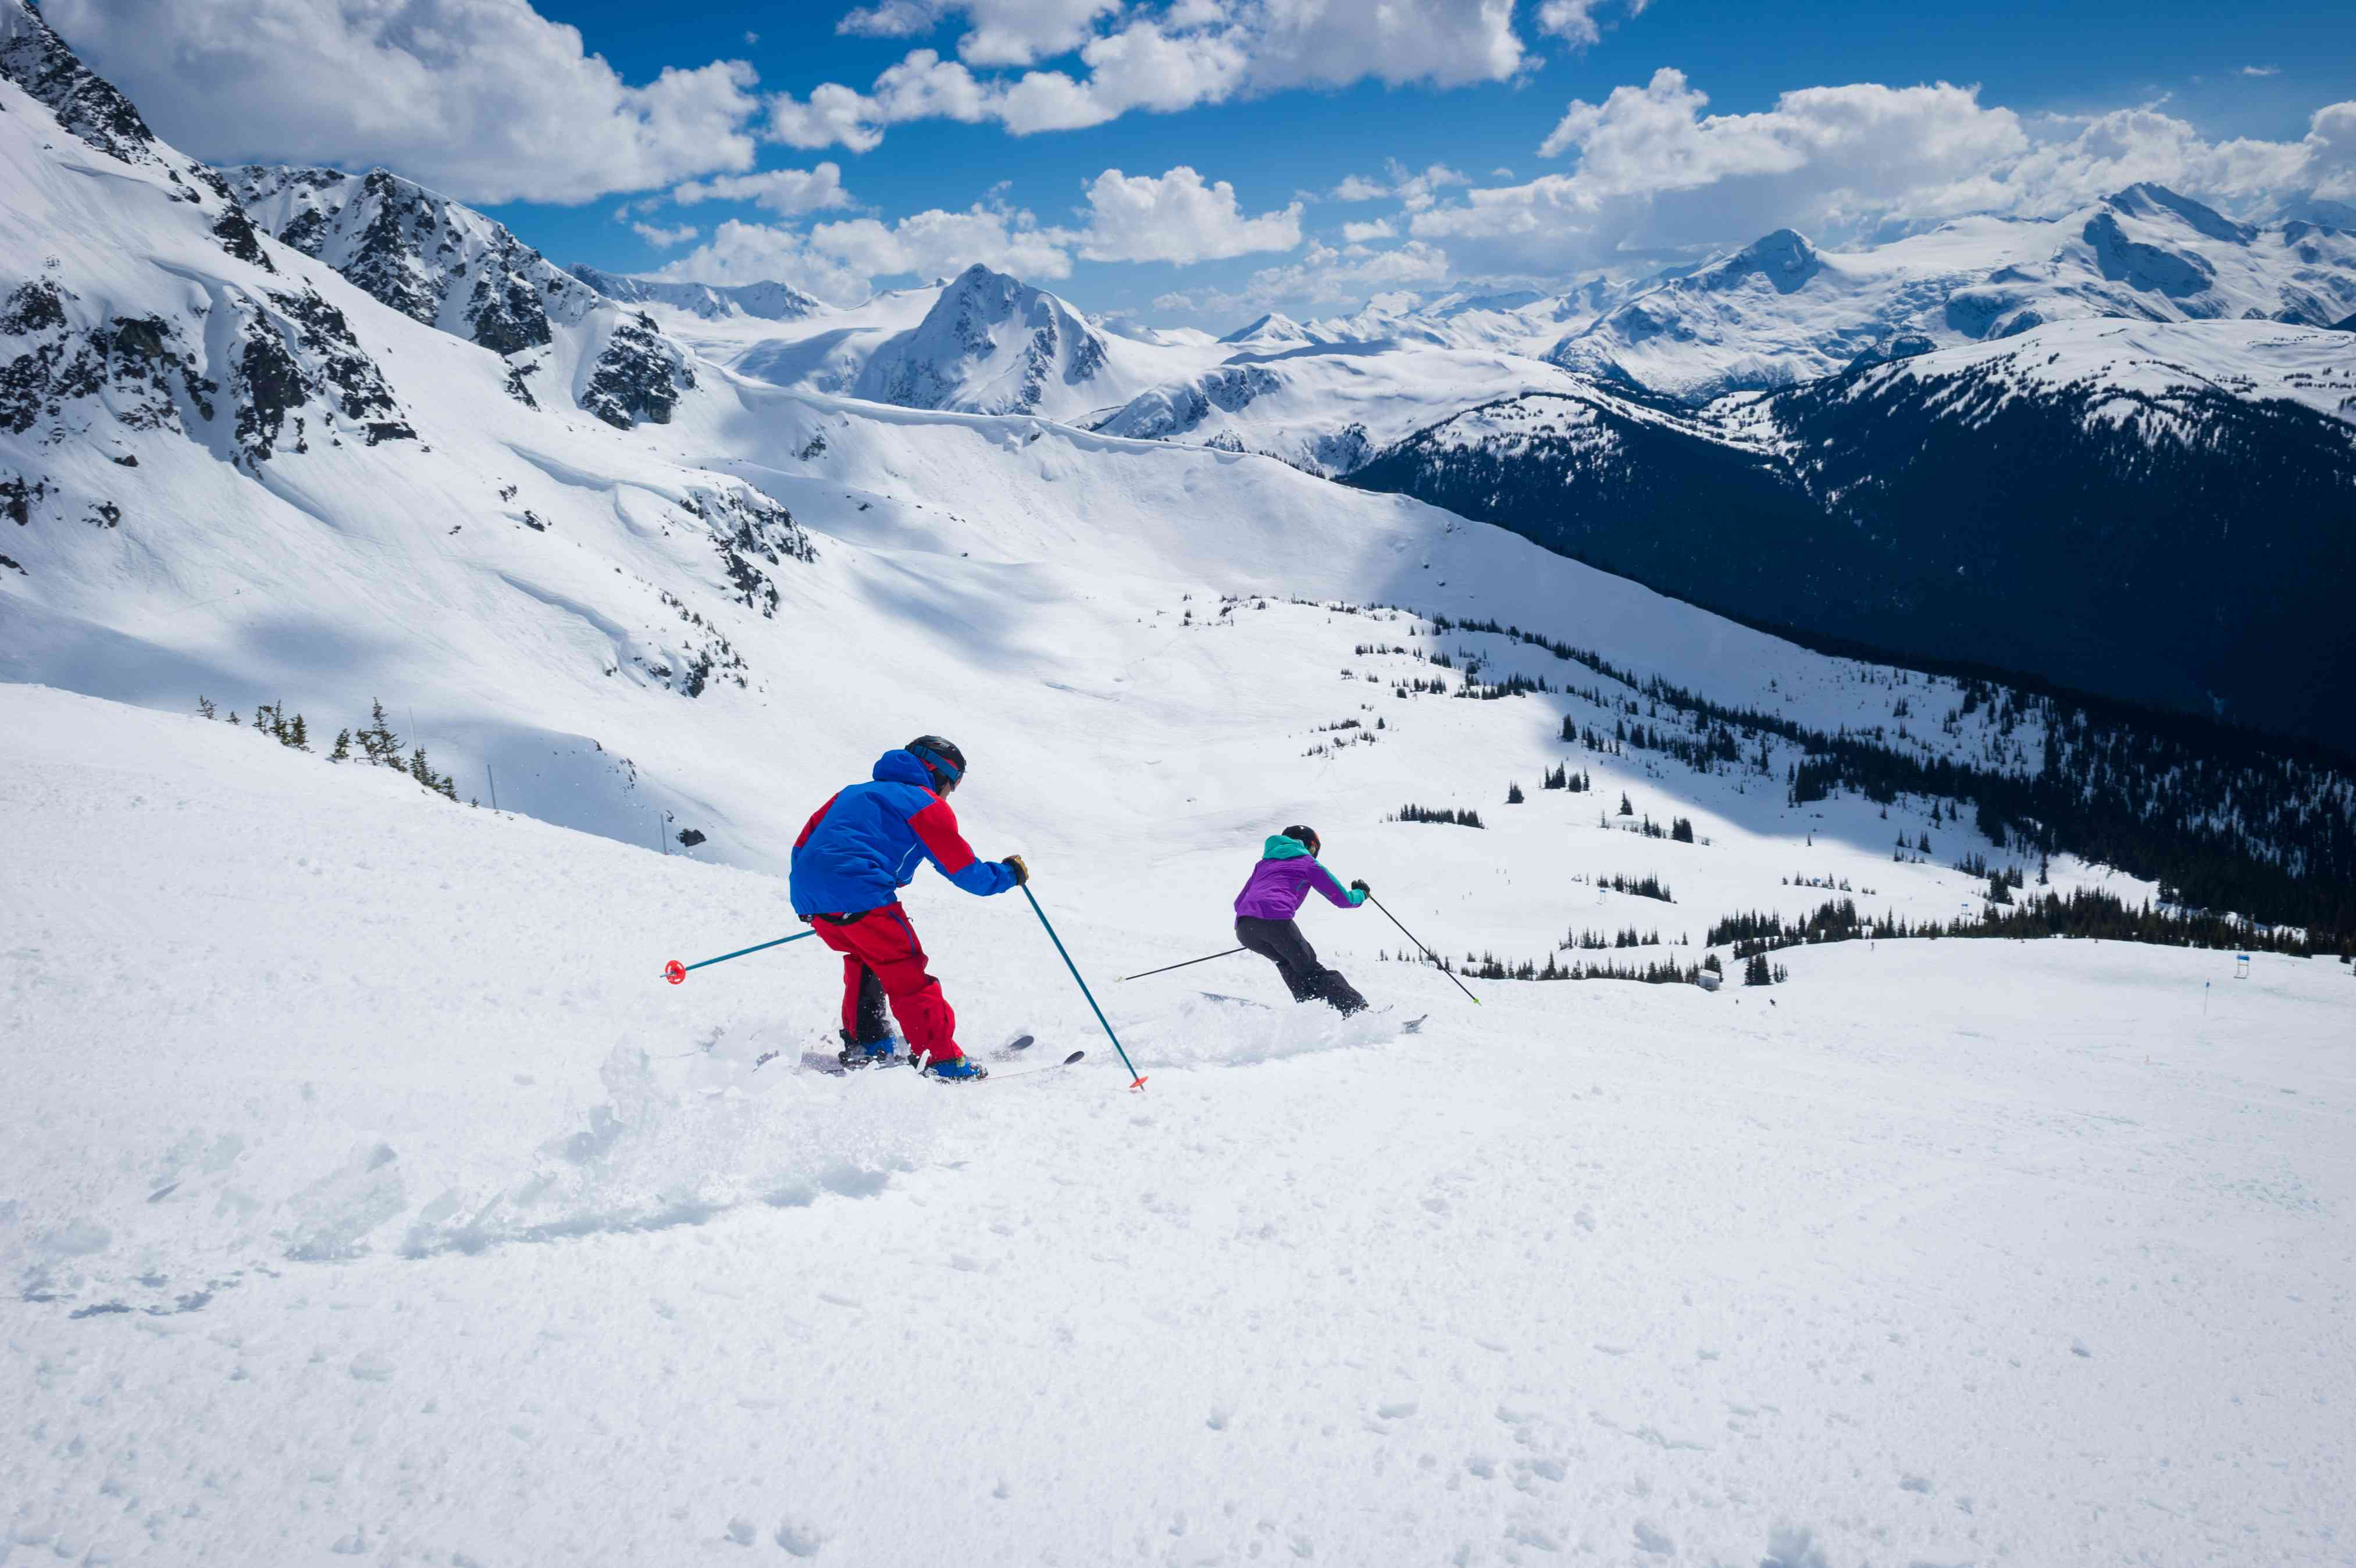 Couple spring skiing in Canada mountains